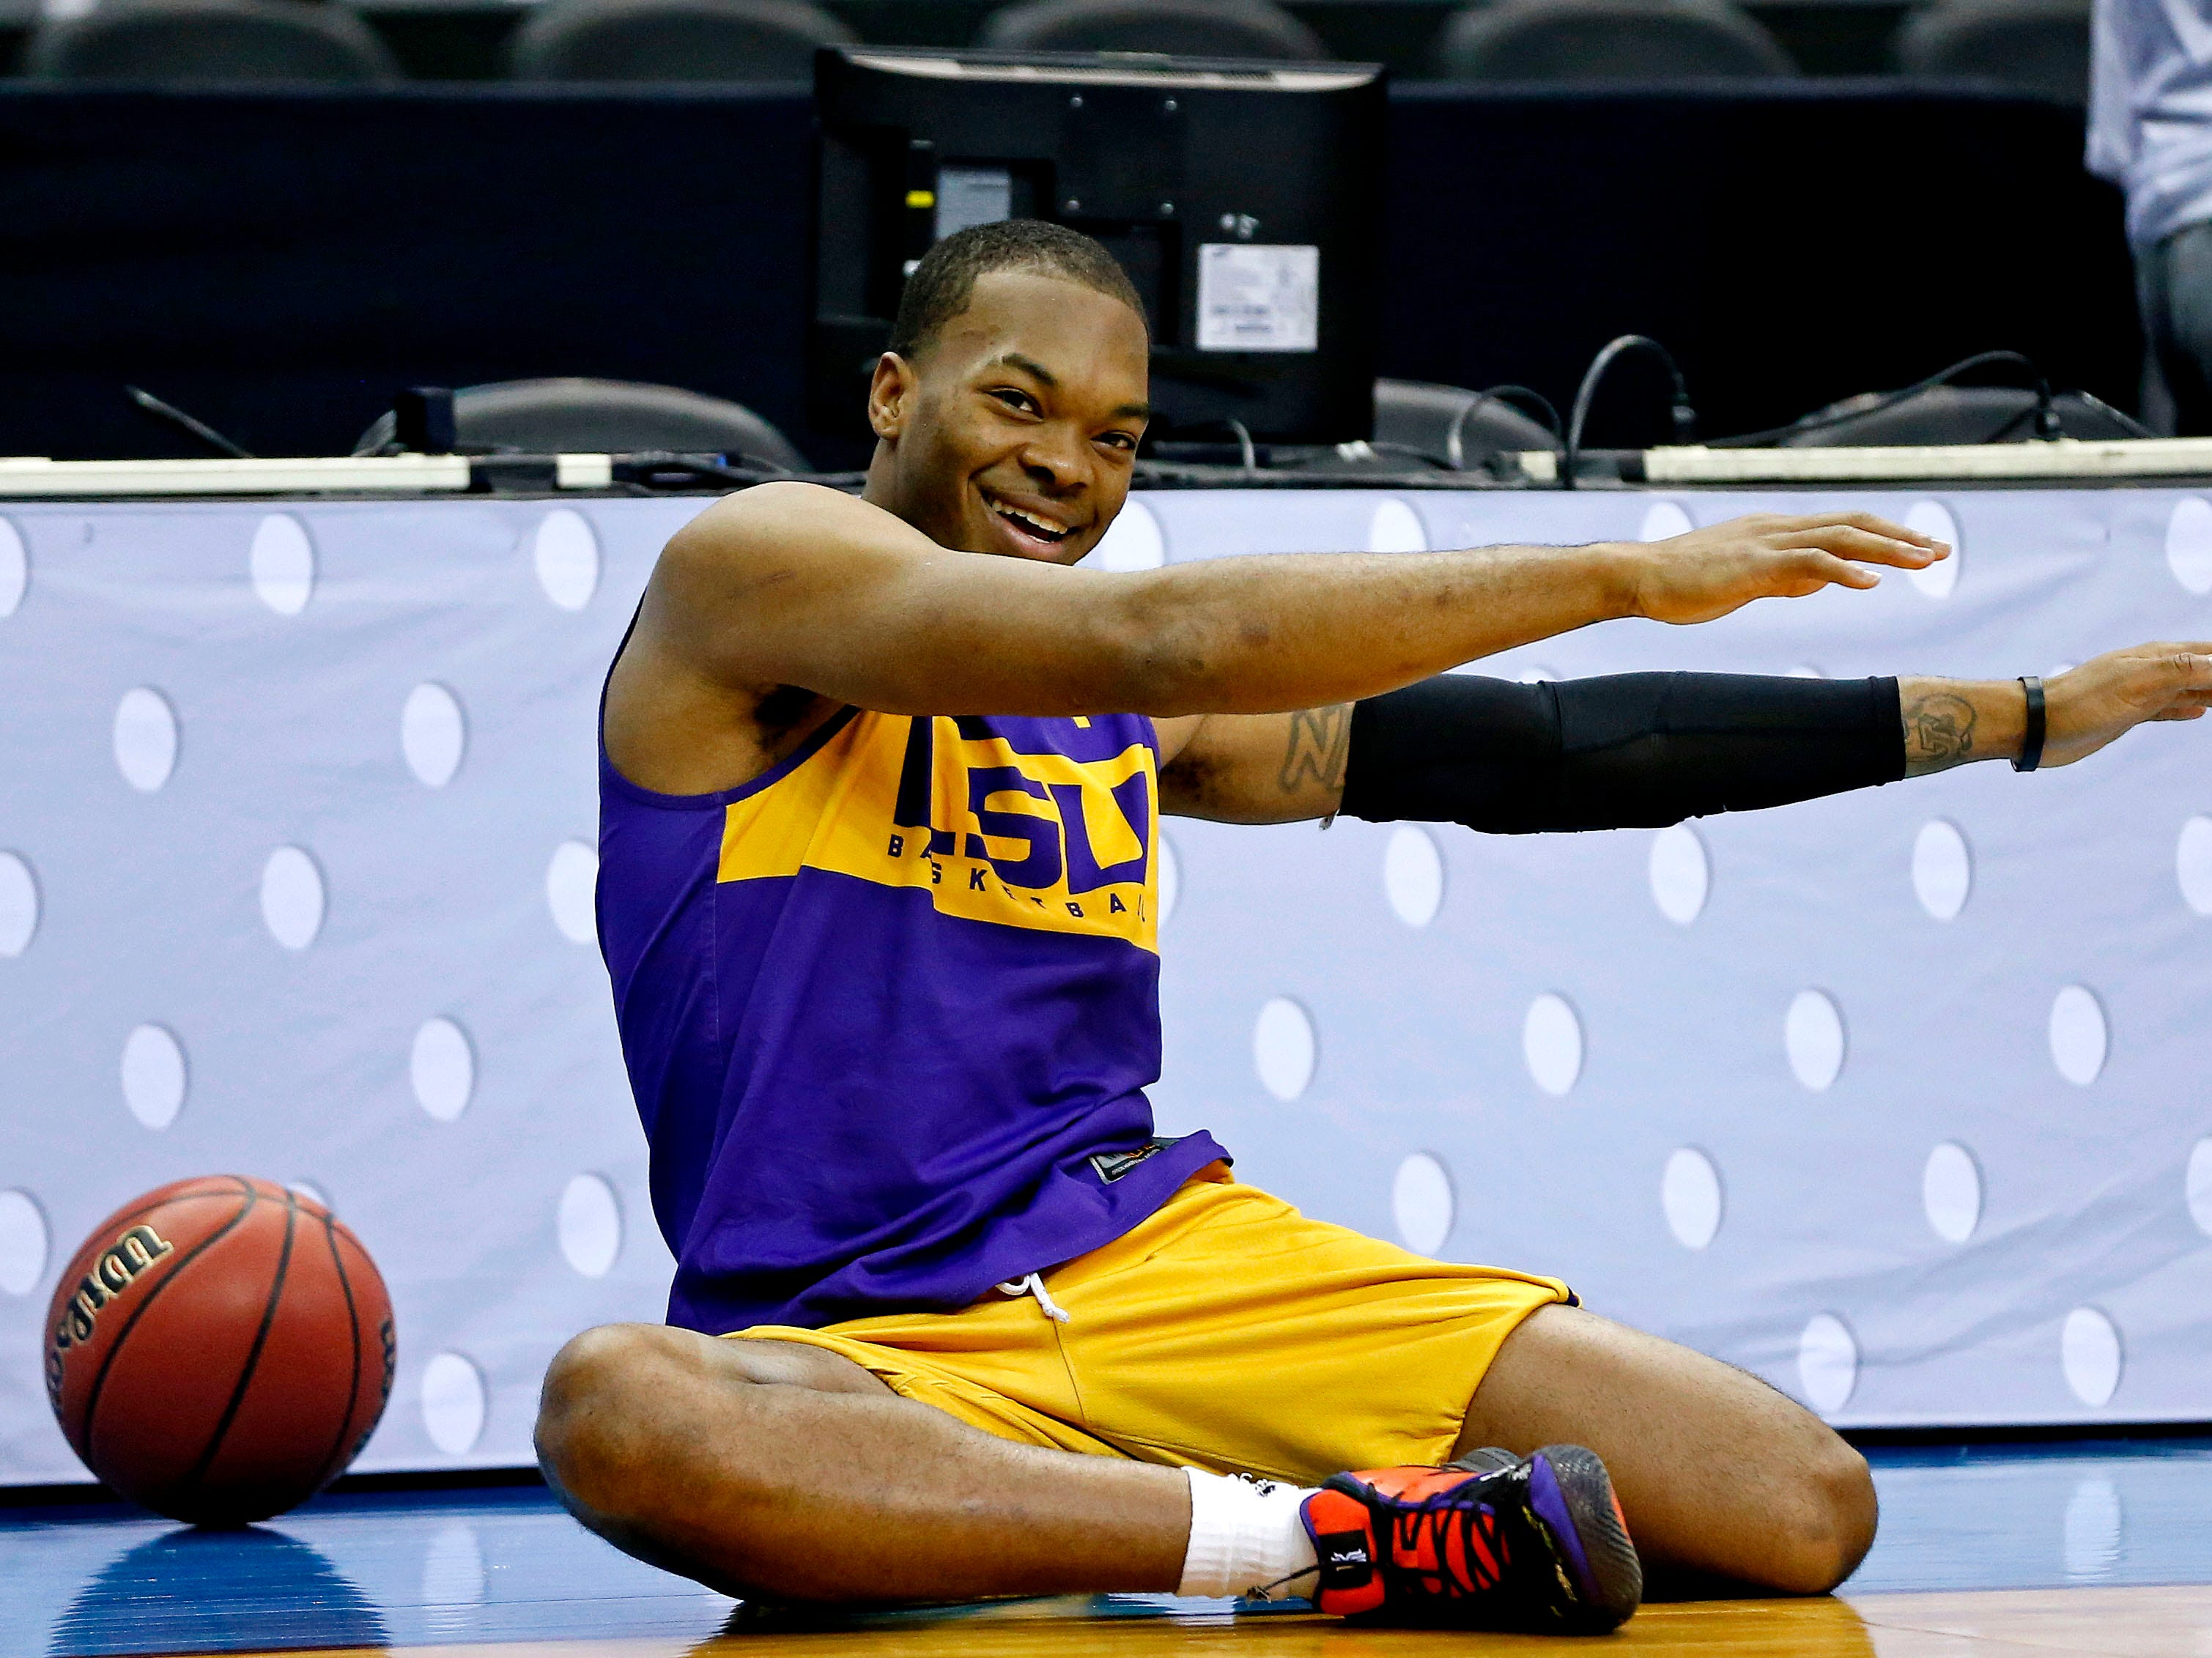 Mar 28, 2019; Washington, DC, USA; LSU Tigers guard Javonte Smart (1) during practice for the east regional of the 2019 NCAA Tournament at Capital One Arena. Mandatory Credit: Amber Searls-USA TODAY Sports